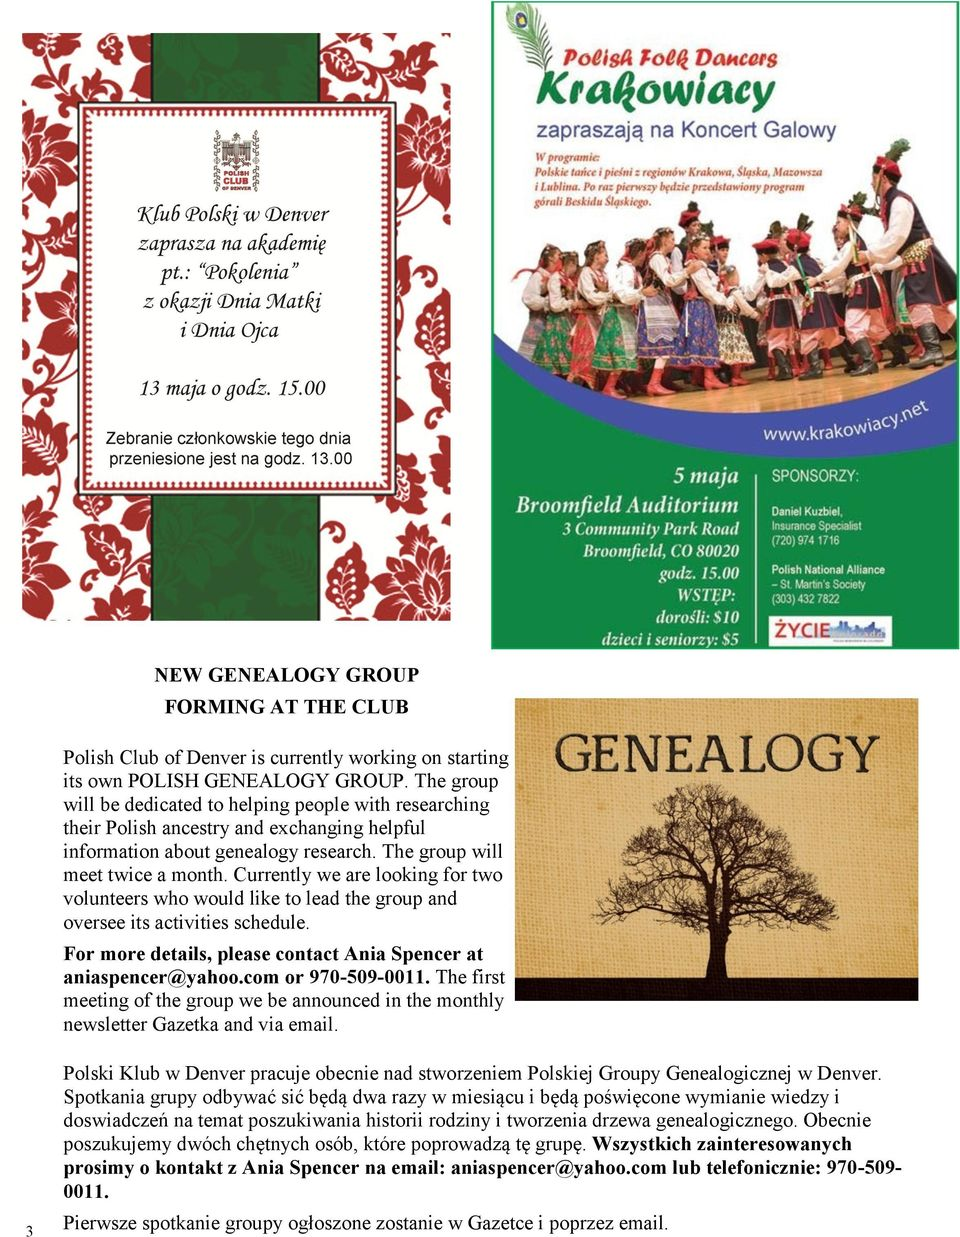 The group will be dedicated to helping people with researching their Polish ancestry and exchanging helpful information about genealogy research. The group will meet twice a month.